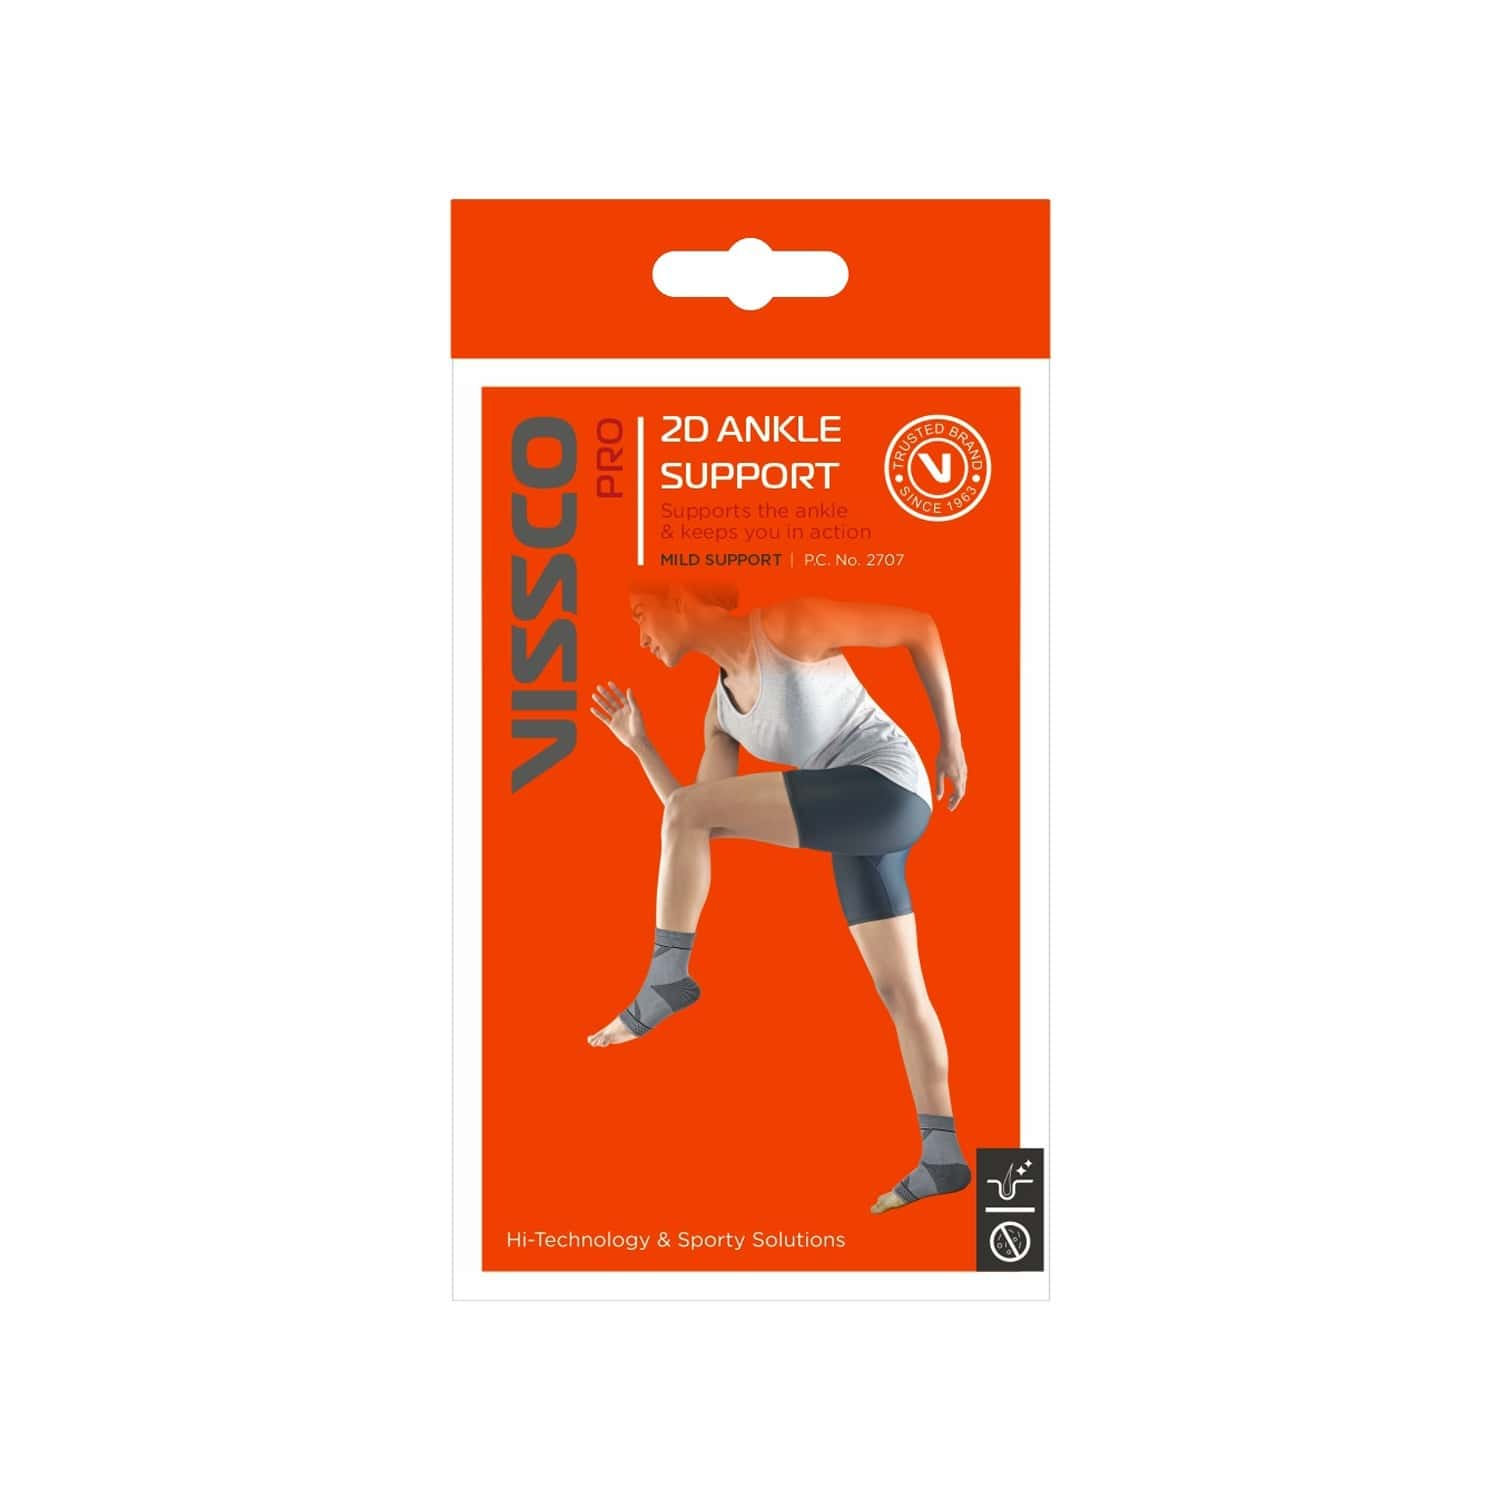 Vissco Pro - 2d Ankle Support Small